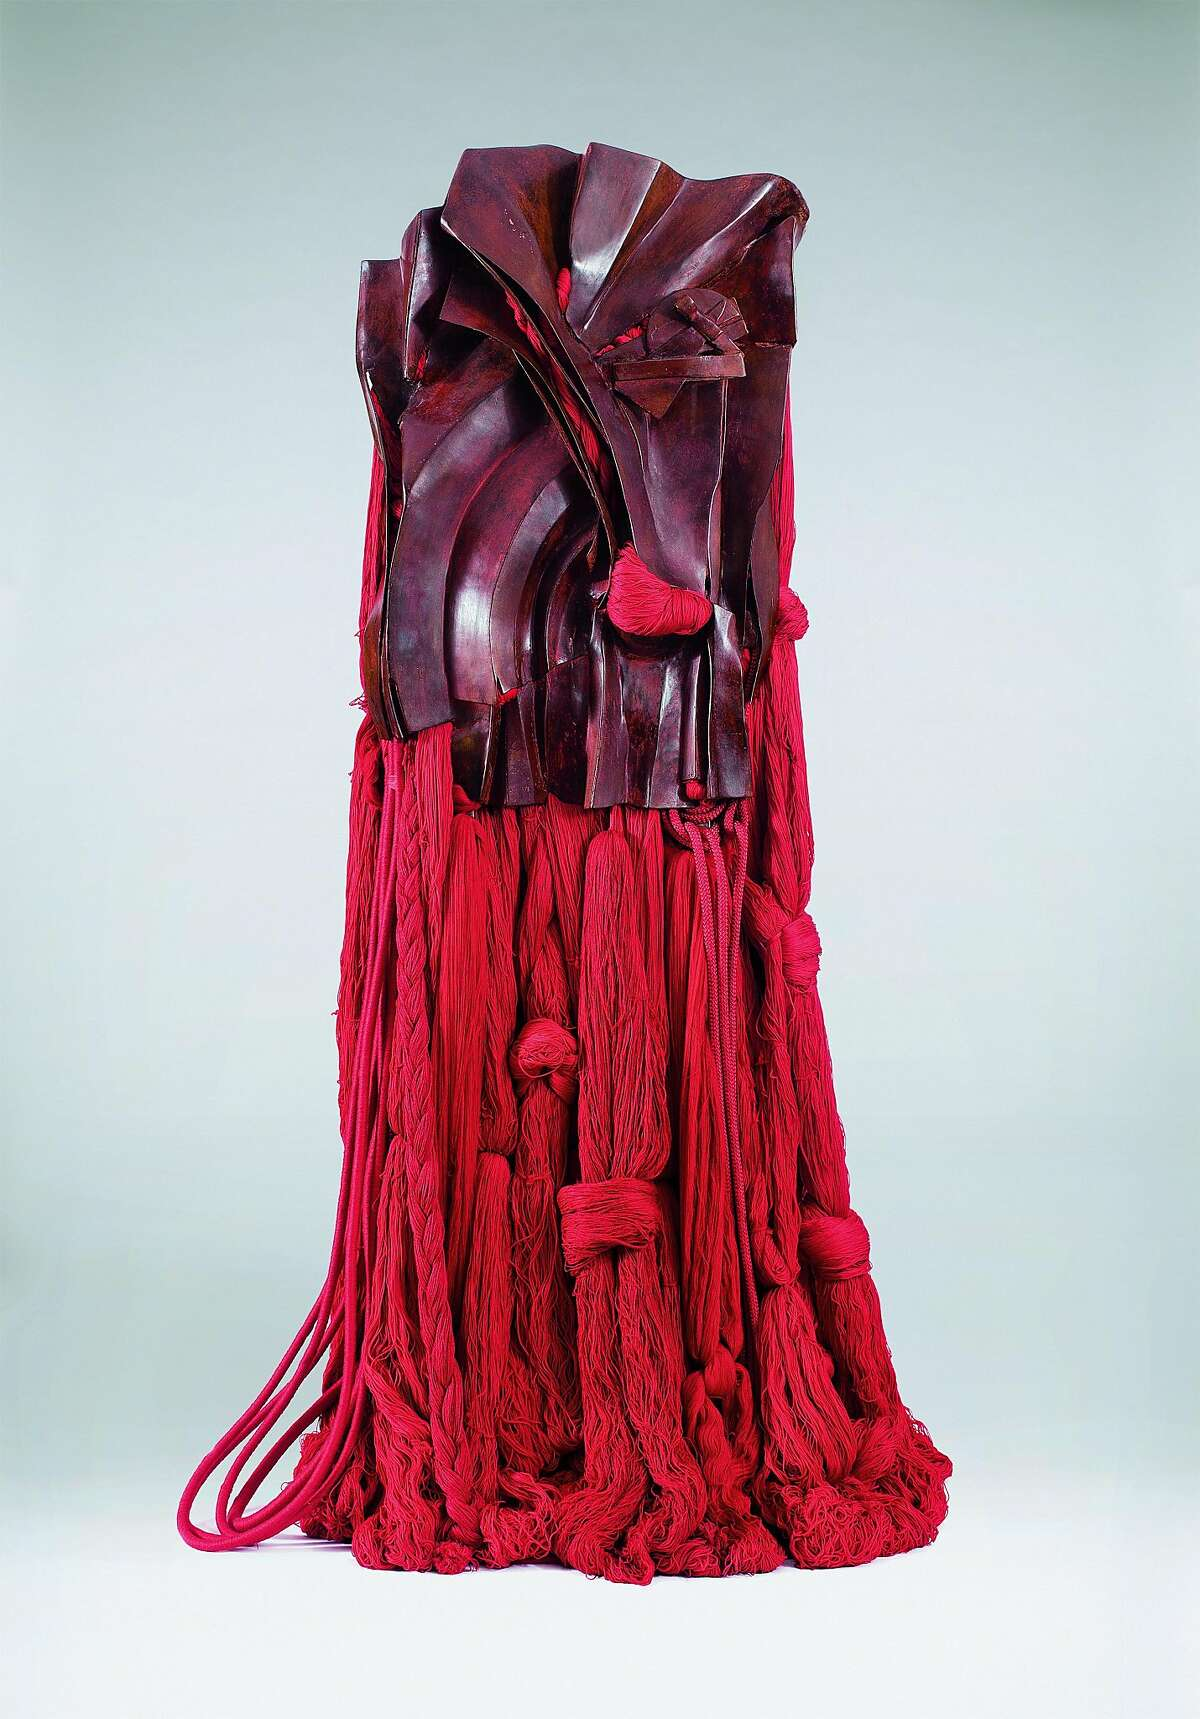 Barbara Chase-Riboud: All That Rises Must Converge / Red, 2008; red bronze, silk, cotton, and synthetic fibers; 74 ½ x 42 x 28 in.; courtesy of the artist.